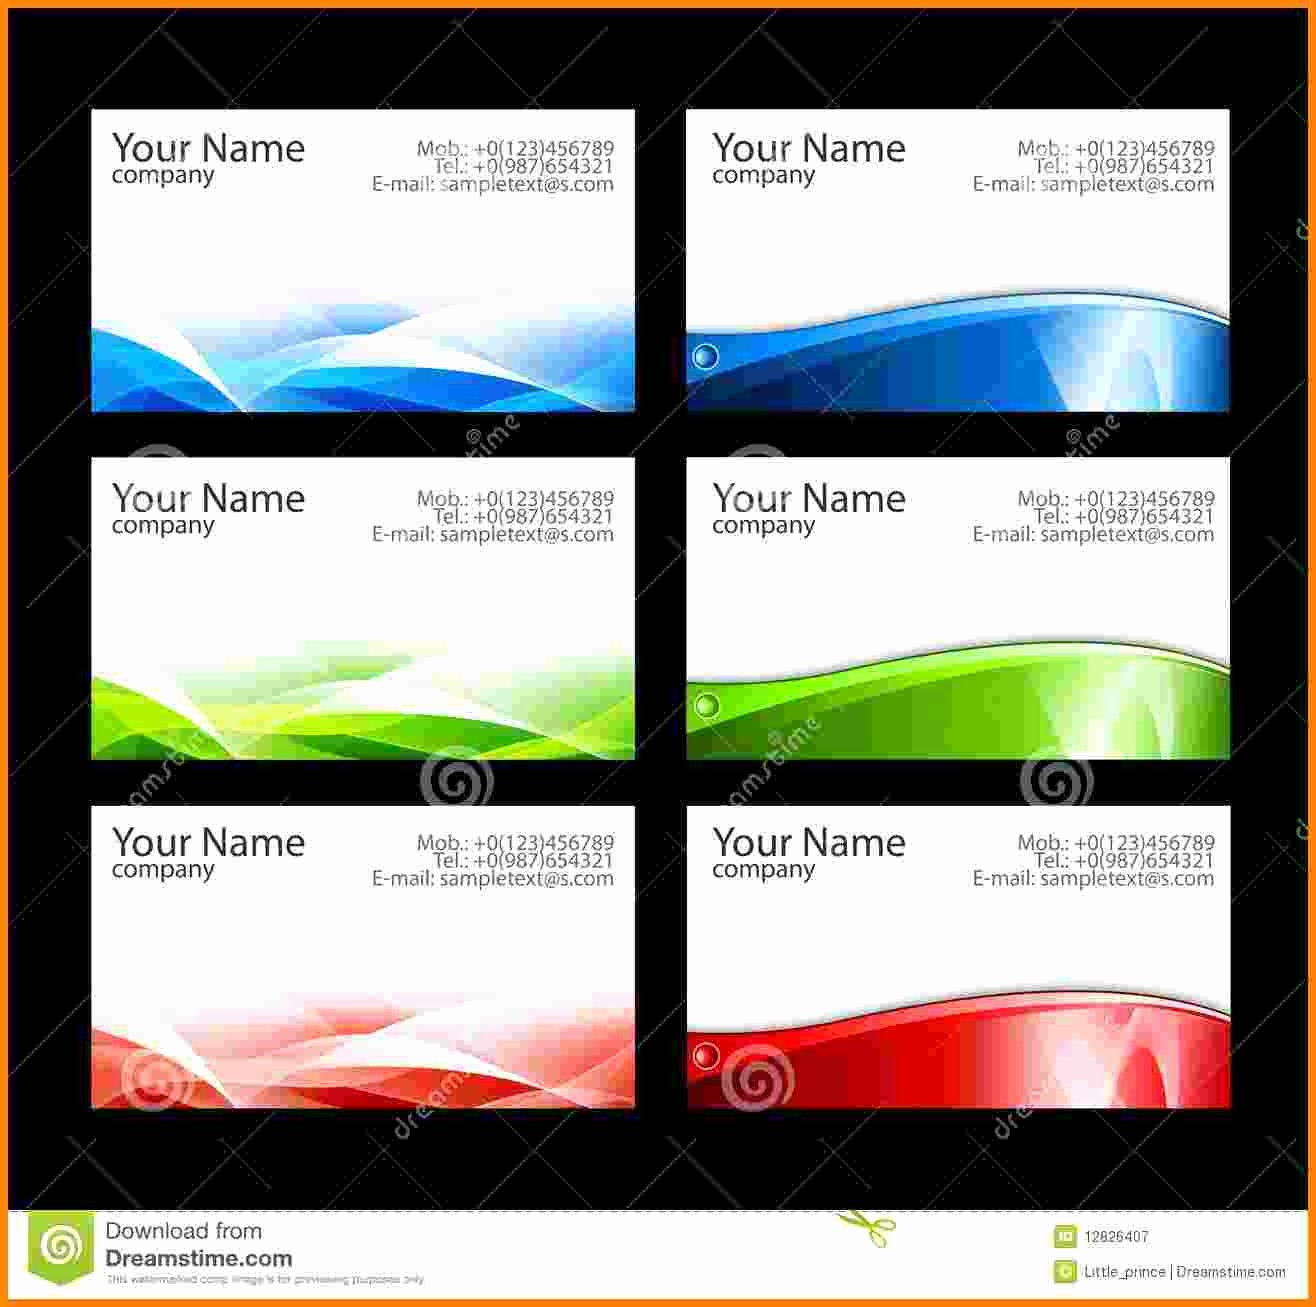 Business Card Template Free Word Beautiful 9 Blank Business Card Template Illustrator